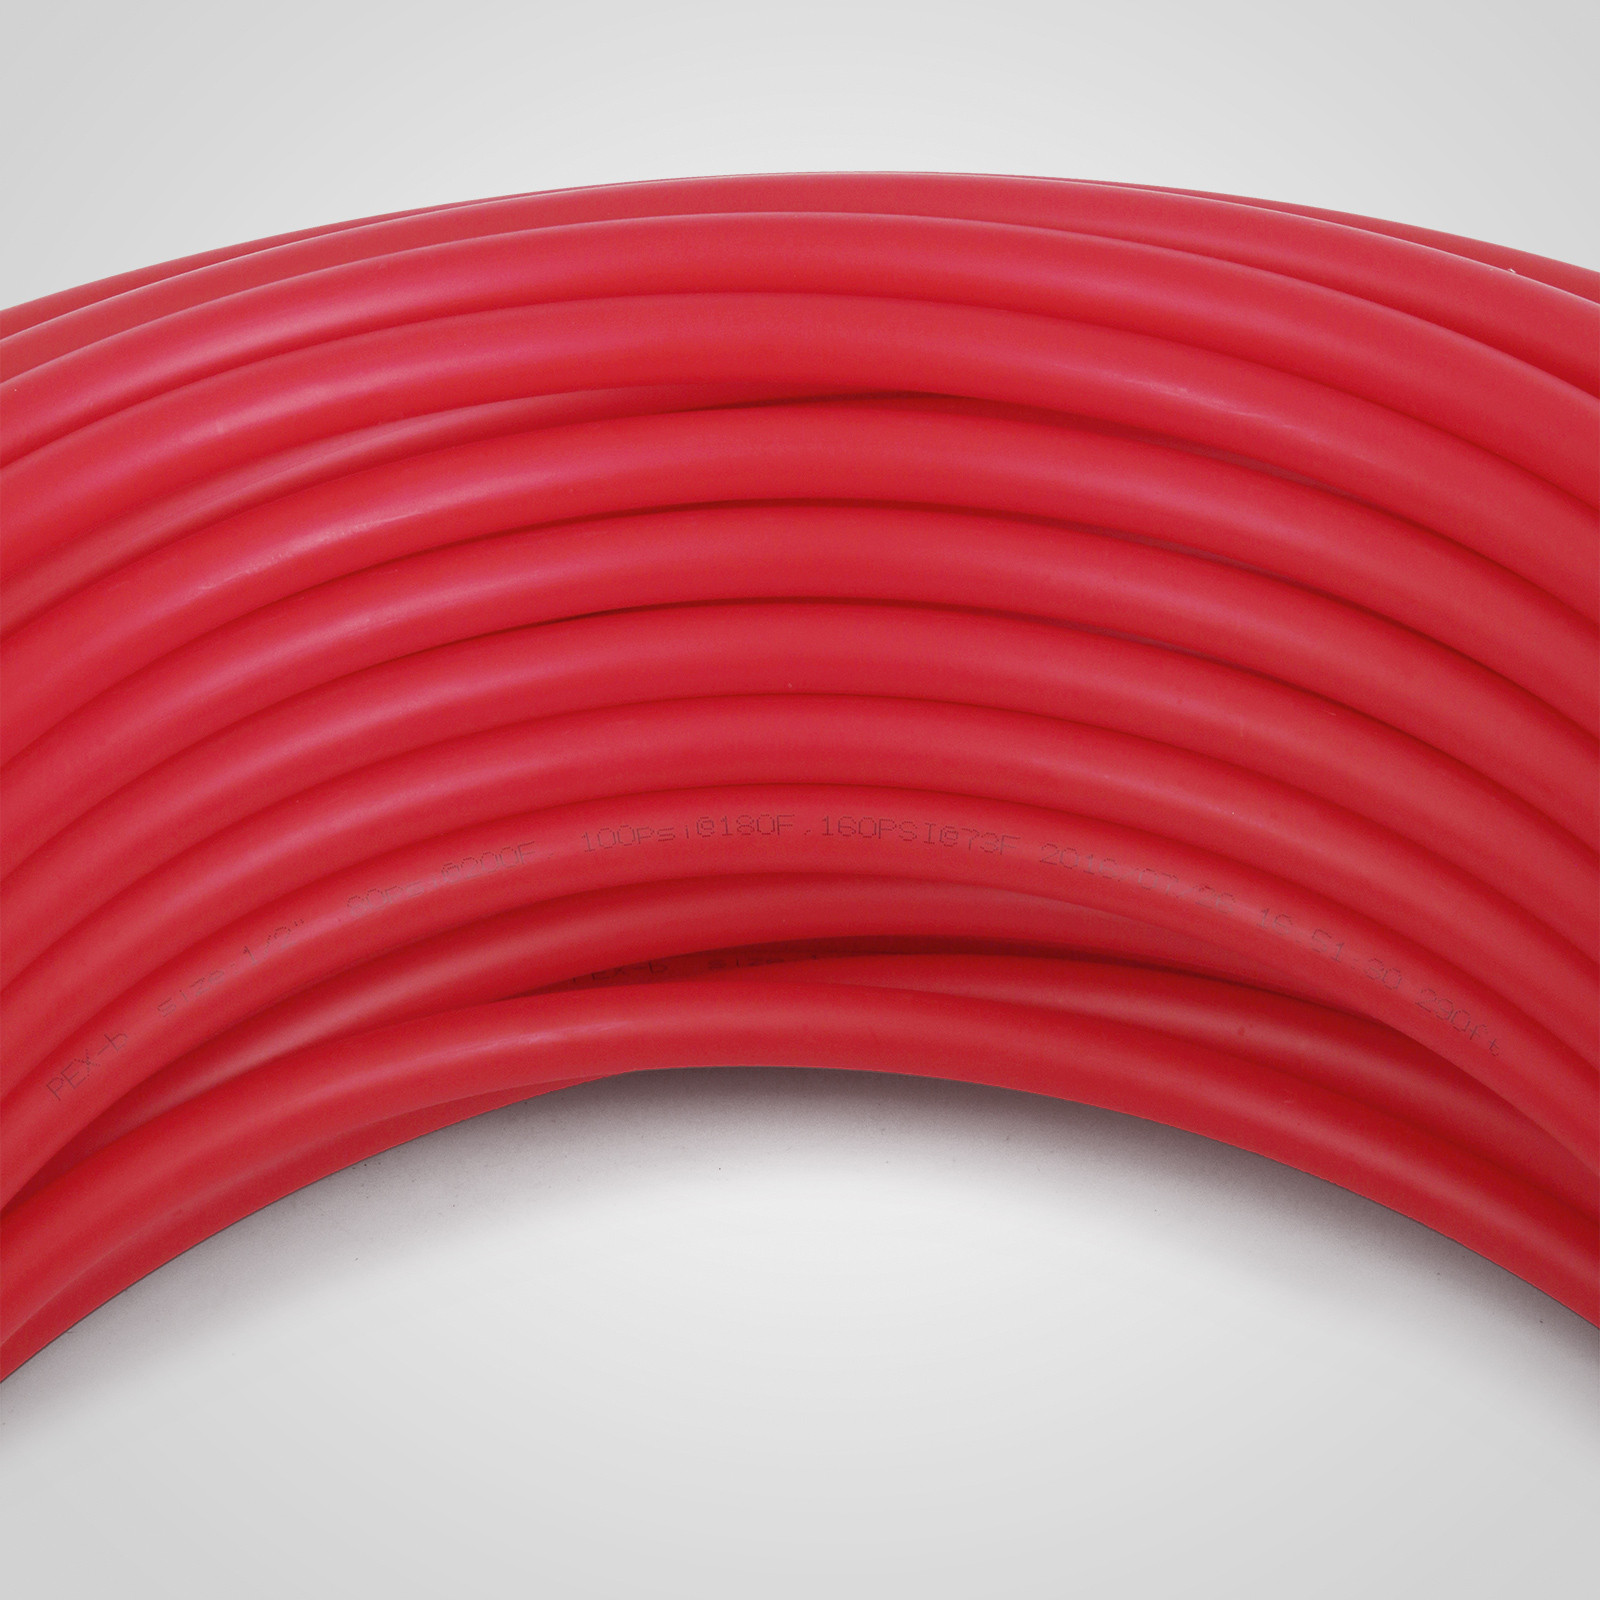 Pex tubing 1 2 1000ft fitting cross linked o2 oxy plumbing for Pex for hot water